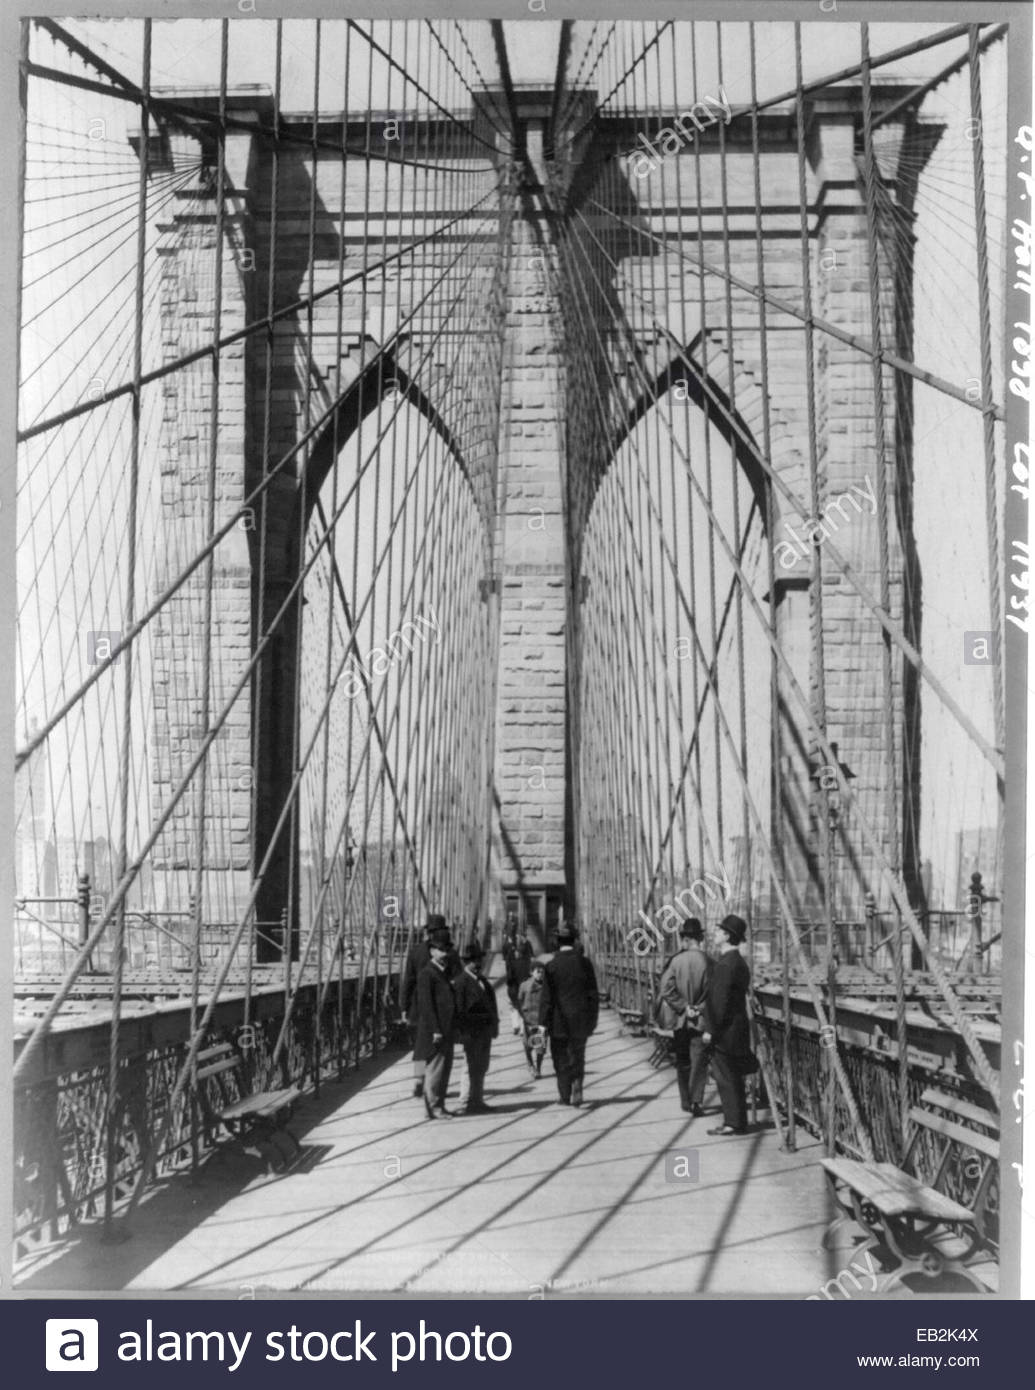 A photograph of people standing and walking on the Brooklyn Bridge promenade. - Stock Image